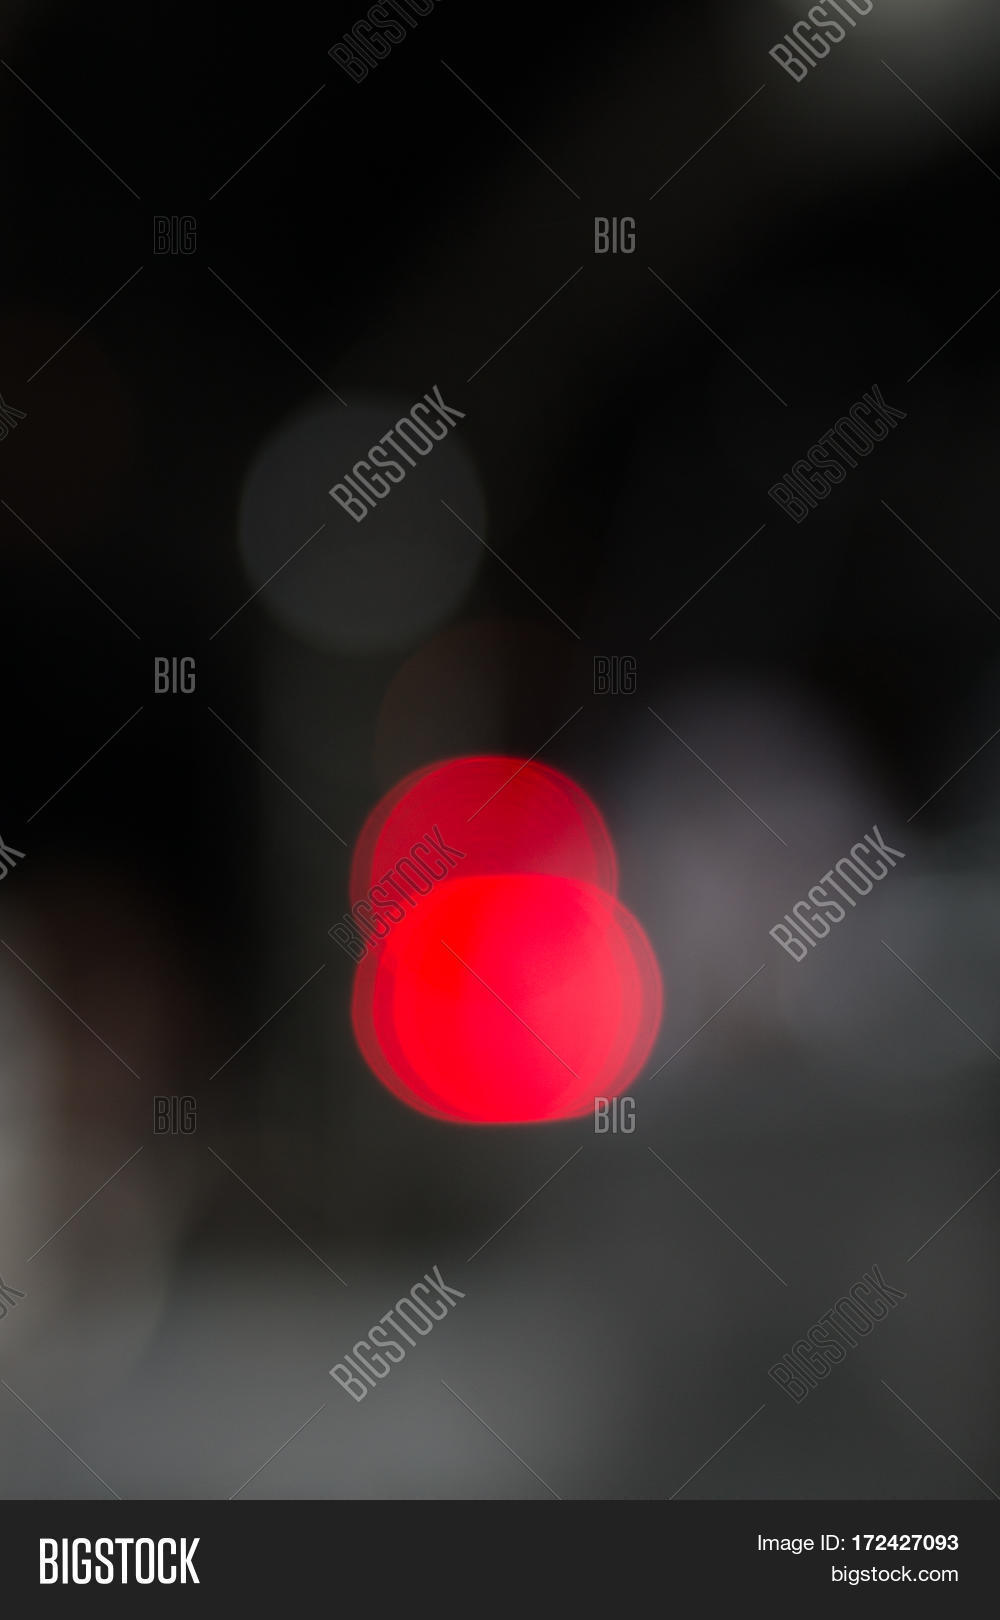 red light bokeh effect with black background